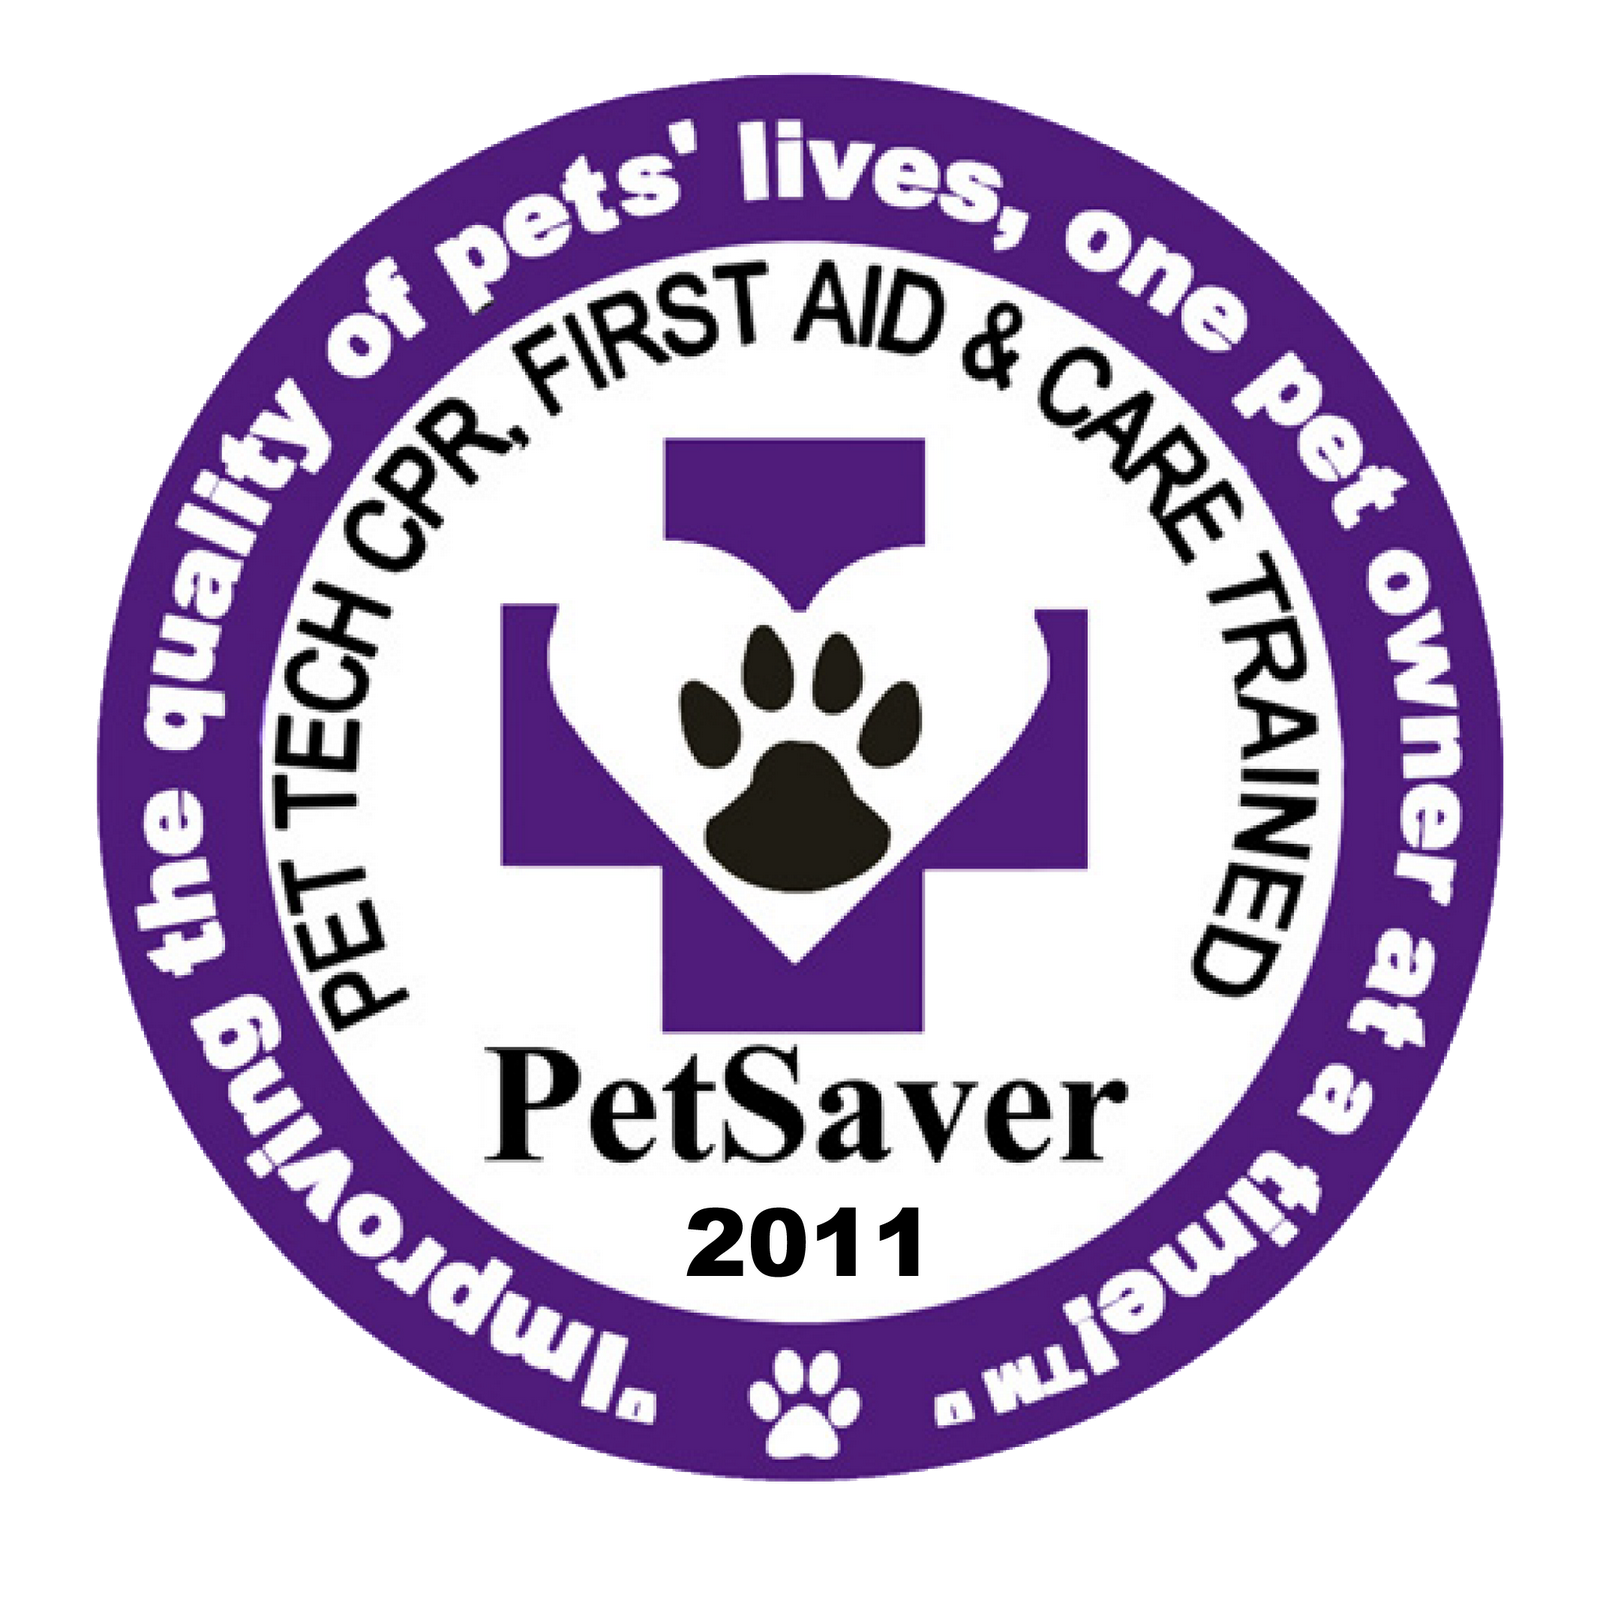 Vetek Chics Pet Cpr And 1st Aid Classes About Pet Saver Cpr And